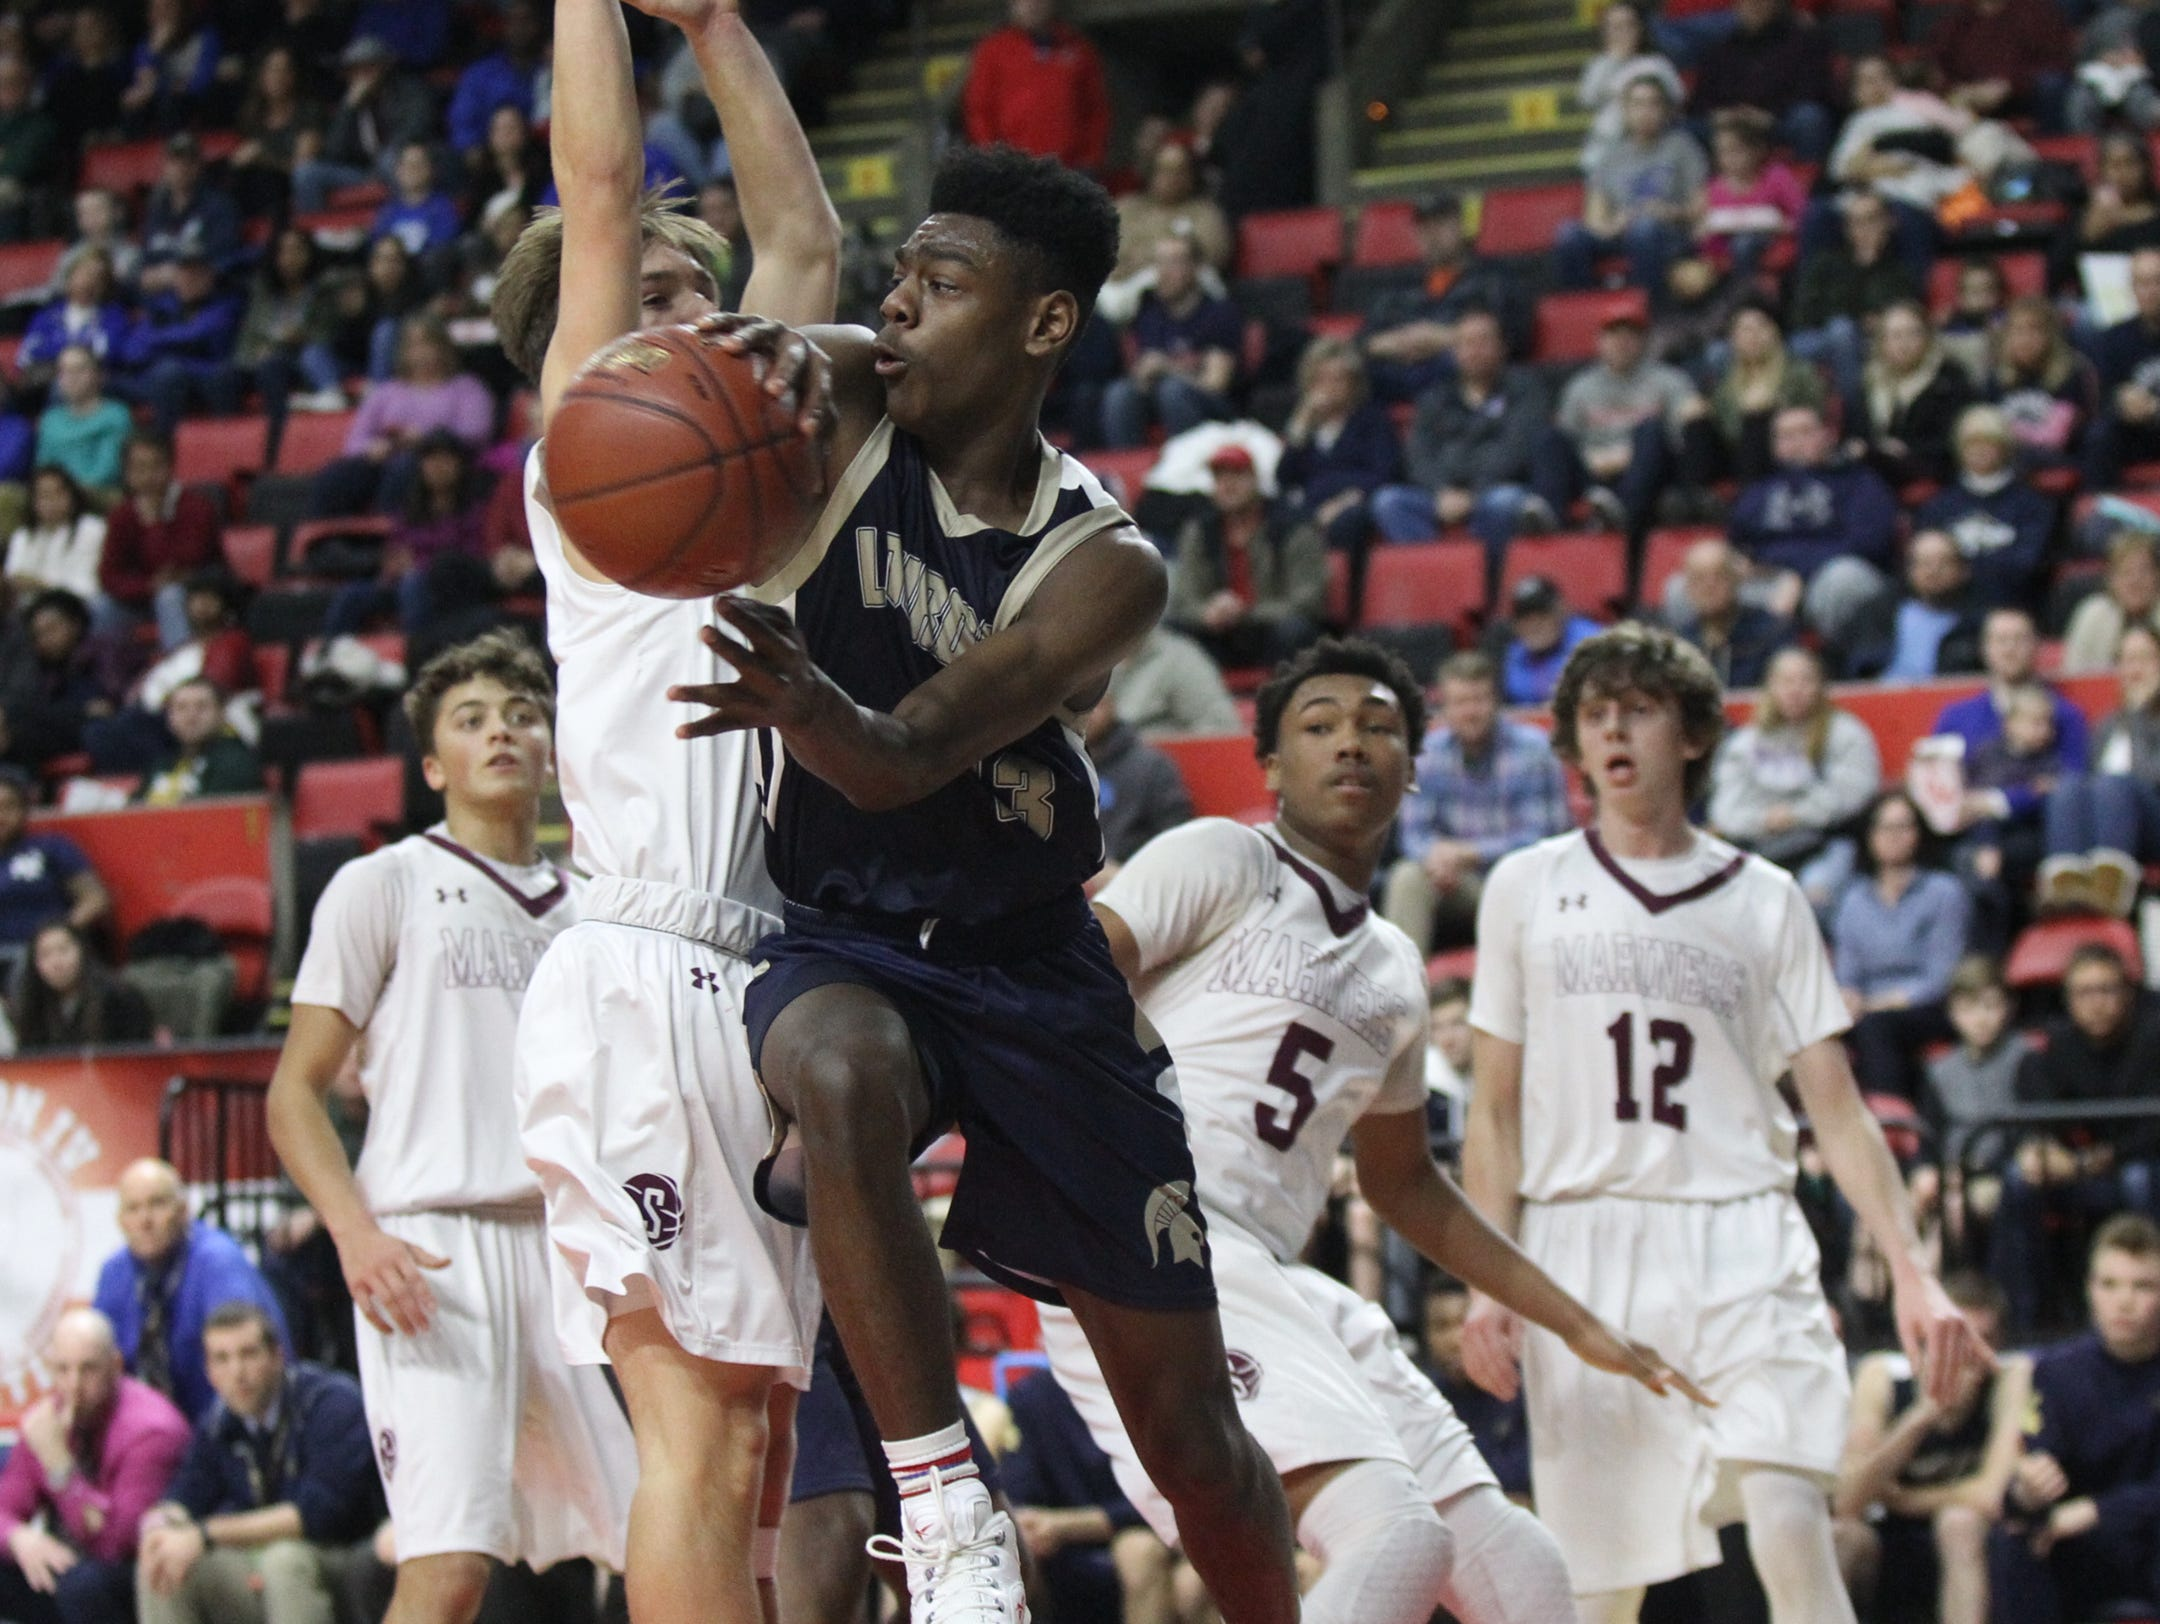 Our Lady of Lourdes's Kevin Townes (13) feeds a pass from underneath the basket during their 70-67 win over Southampton in the NYSPHSAA boys Class A semifinal basketball game at Floyd L. Maines Veterans Memorial Arena in Binghamton on Saturday, March 18, 2017.